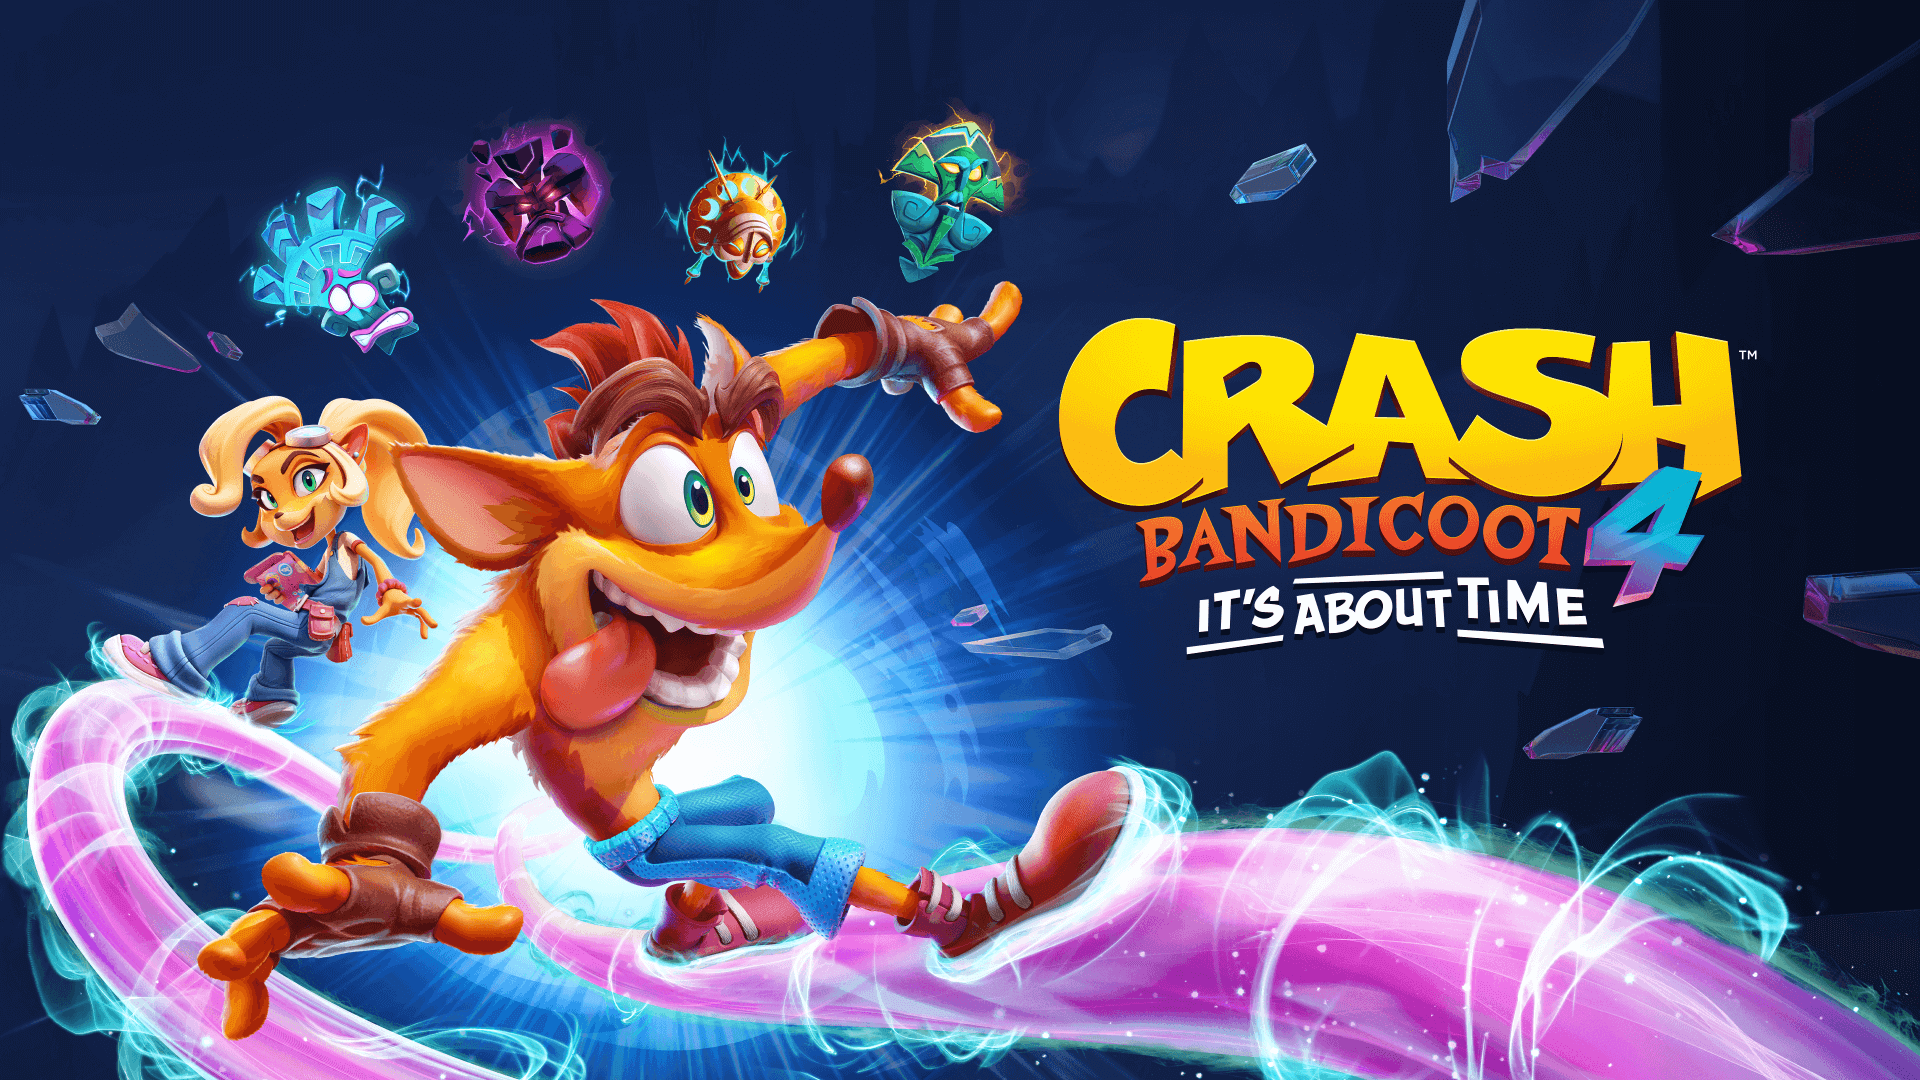 crash bandicoot 4 its about time game wallpaper 71960